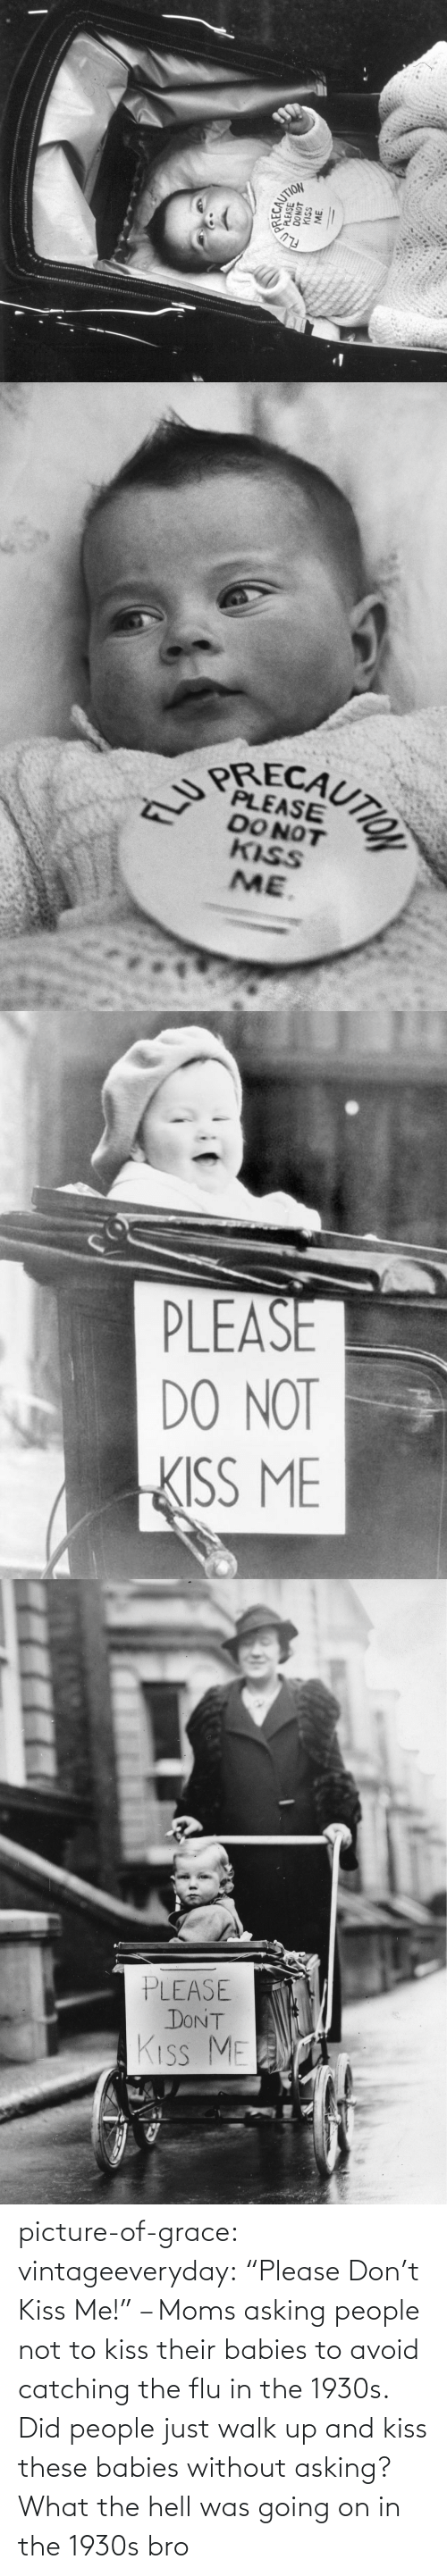 "Asking: picture-of-grace:  vintageeveryday: ""Please Don't Kiss Me!"" – Moms asking people not to kiss their babies to avoid catching the flu in the 1930s.   Did people just walk up and kiss these babies without asking? What the hell was going on in the 1930s bro"